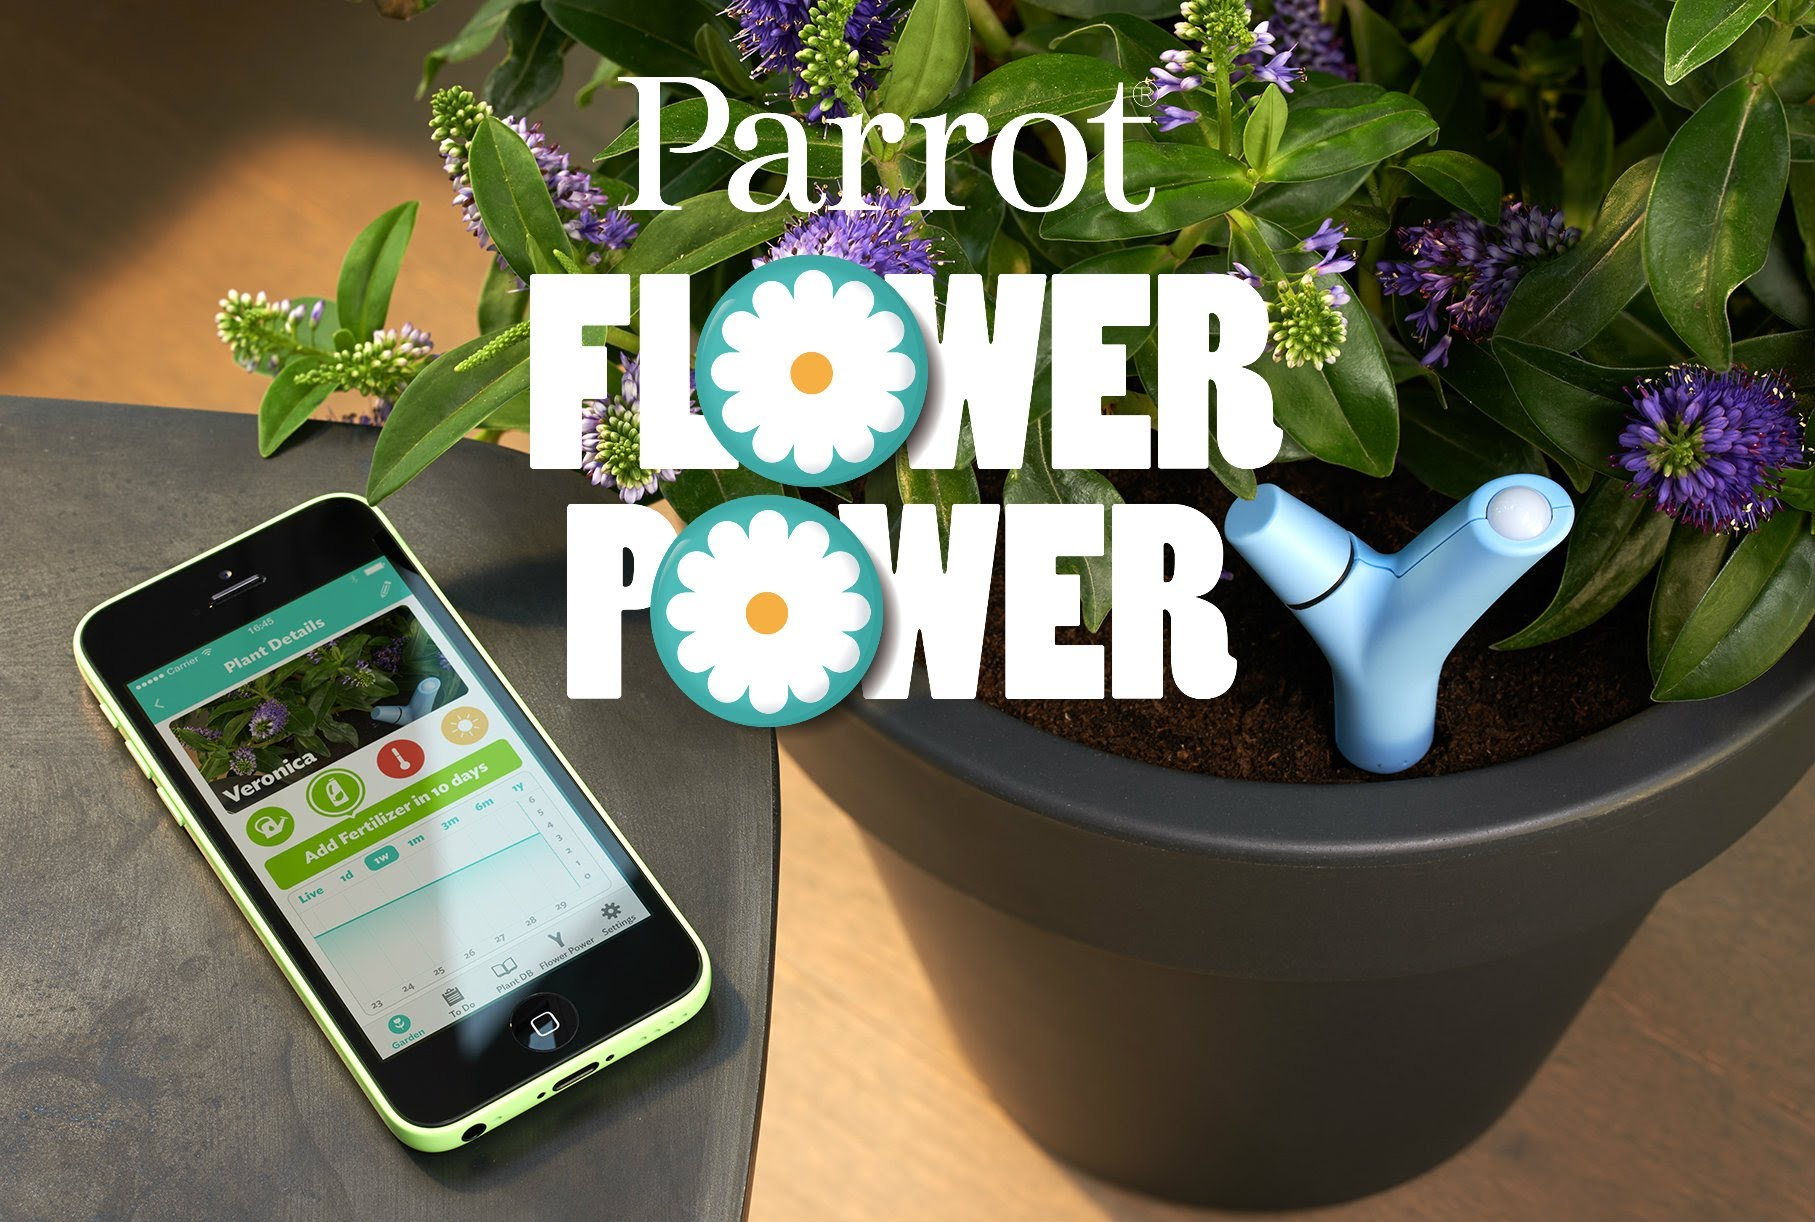 The Power Flower Parrot